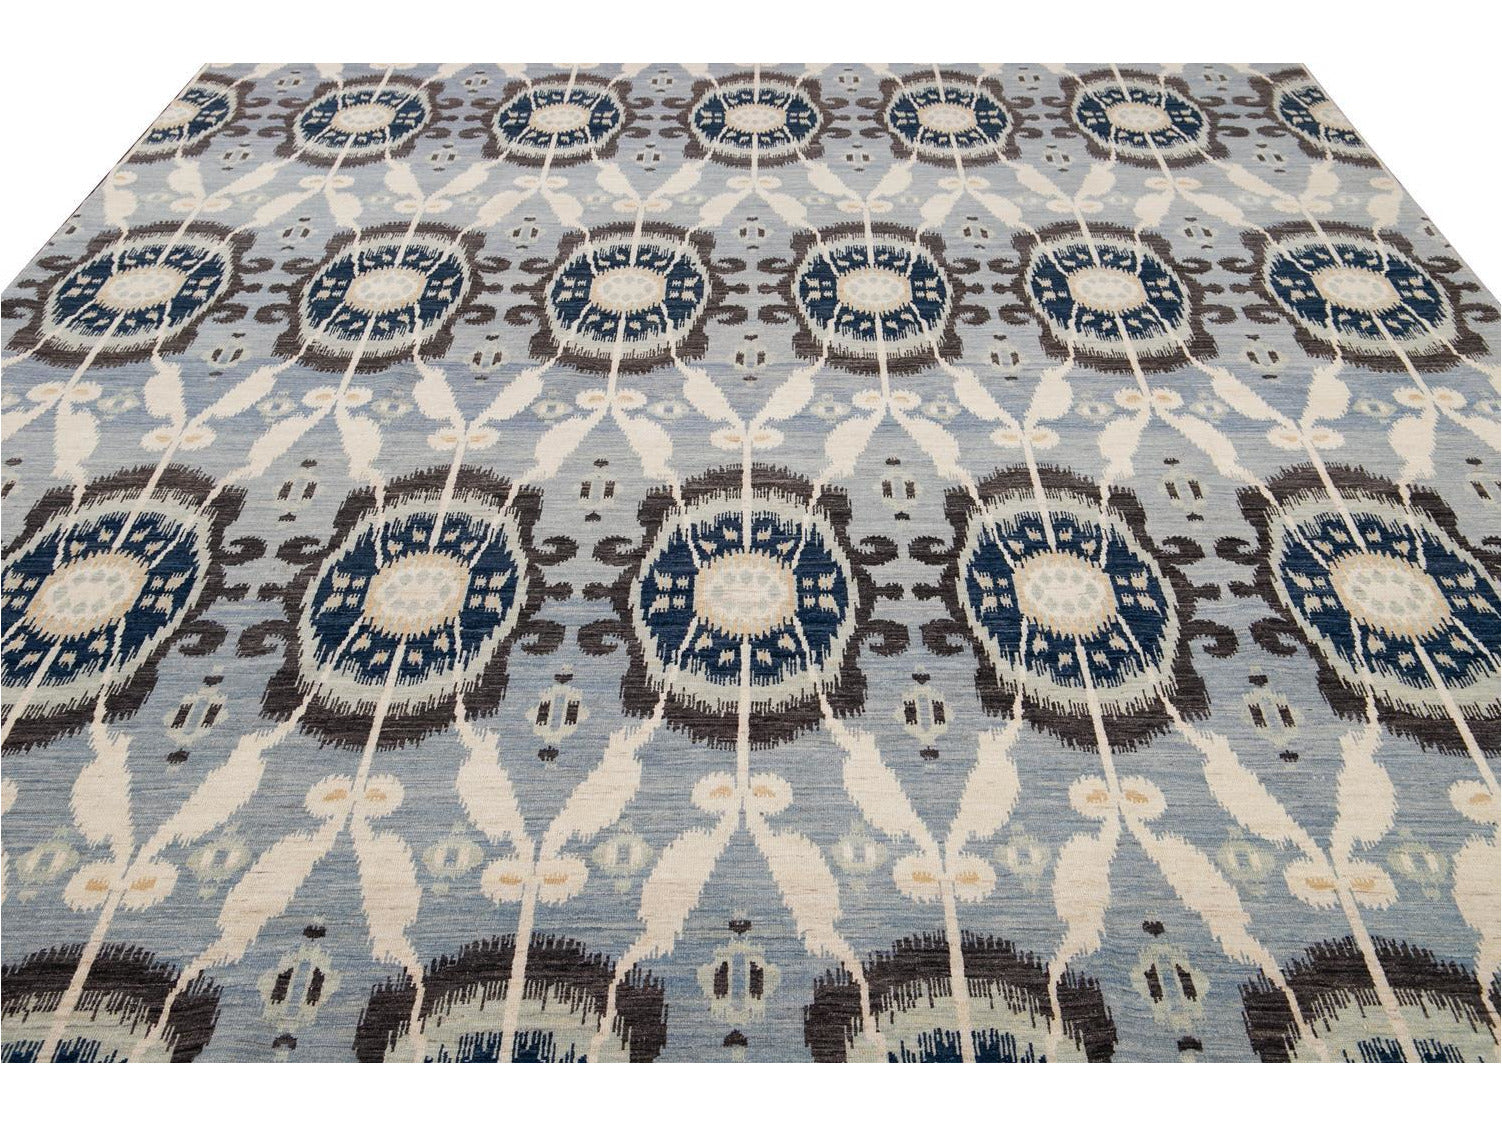 Early 21st Century Modern Transitional Wool Rug